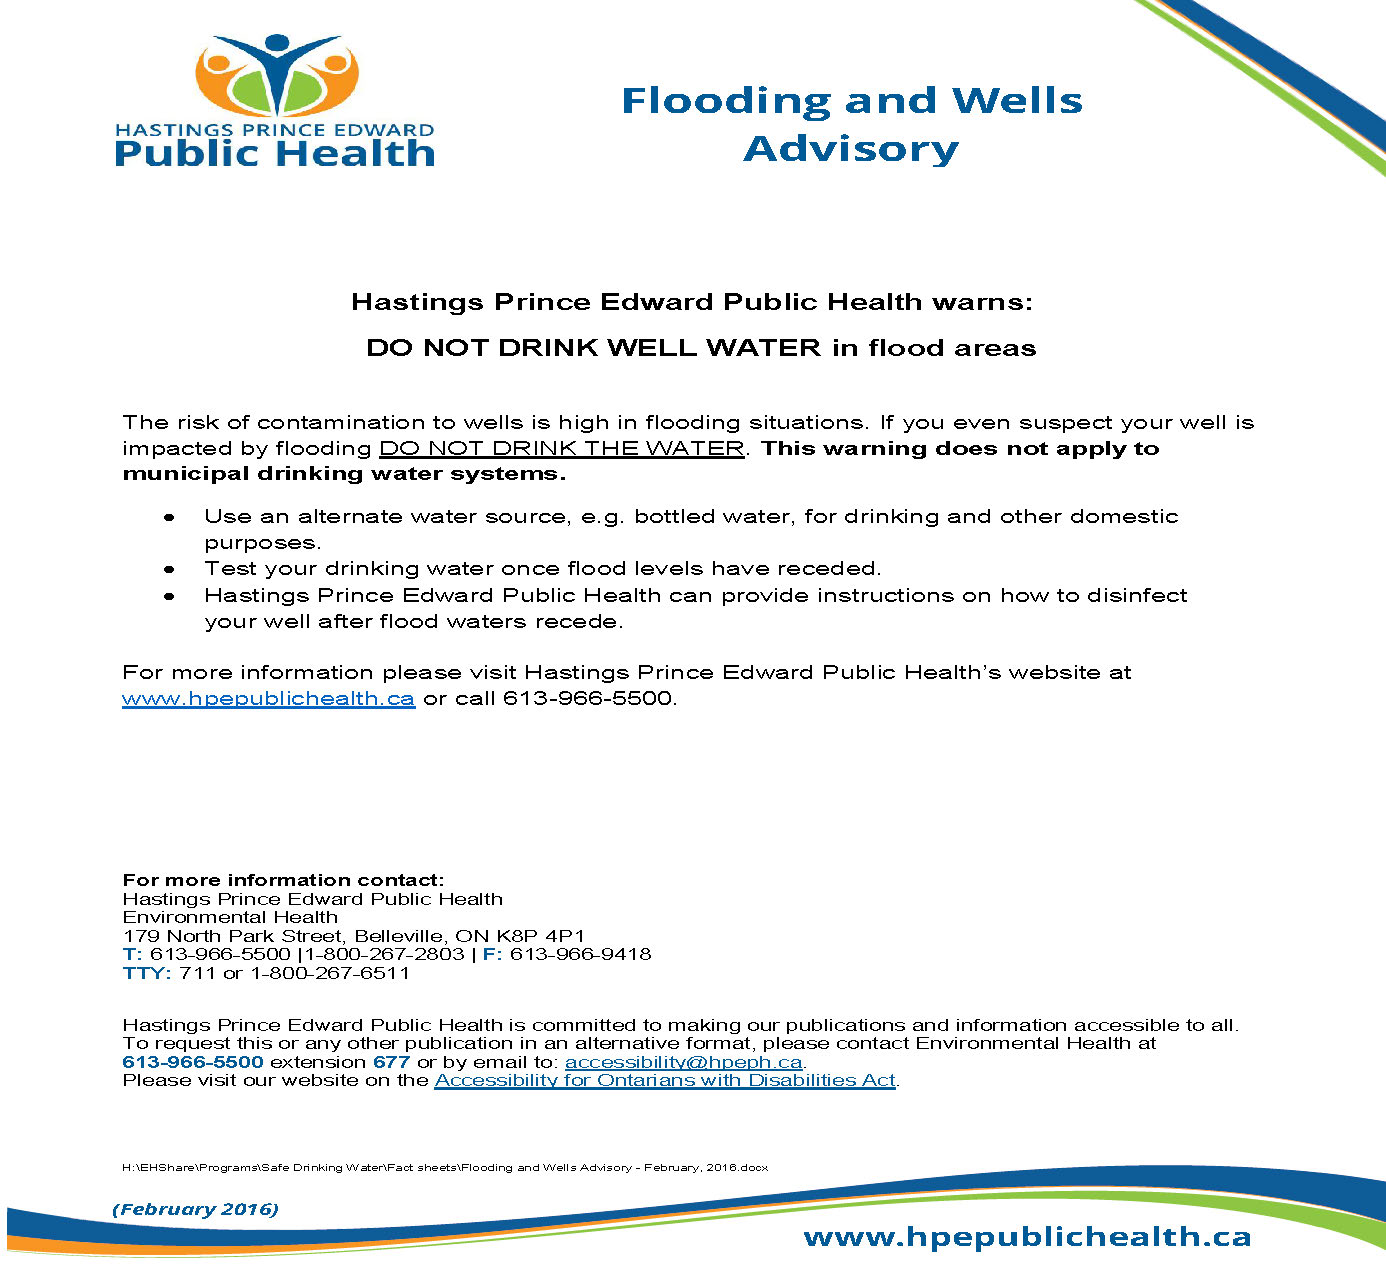 Flooding and Wells Advisory - February 2016.jpg